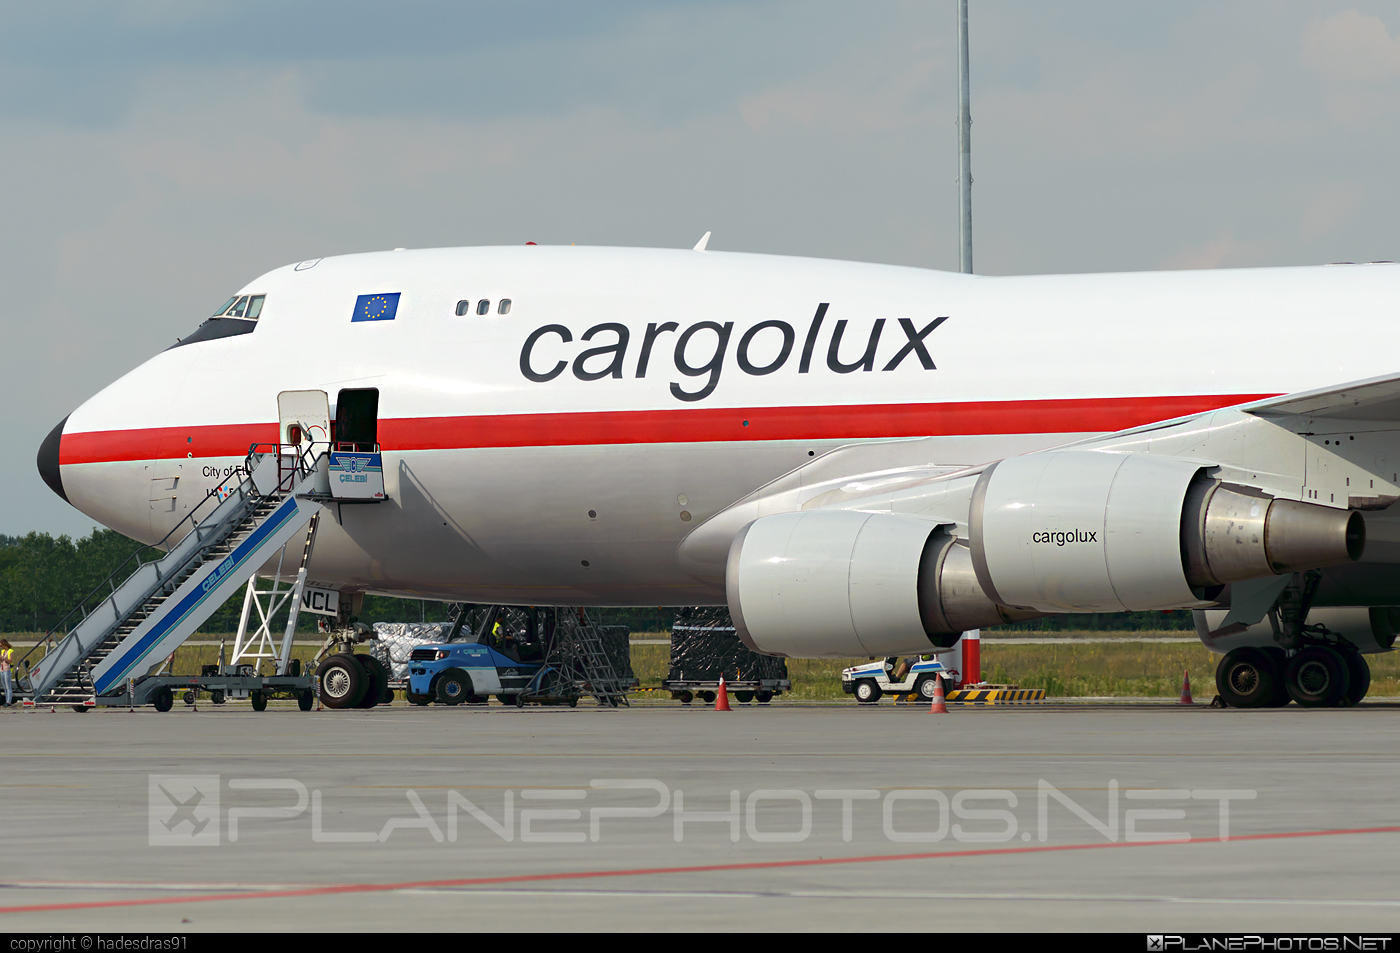 Boeing 747-400ERF - LX-NCL operated by Cargolux Airlines International #b747 #b747erf #b747freighter #boeing #boeing747 #cargolux #jumbo